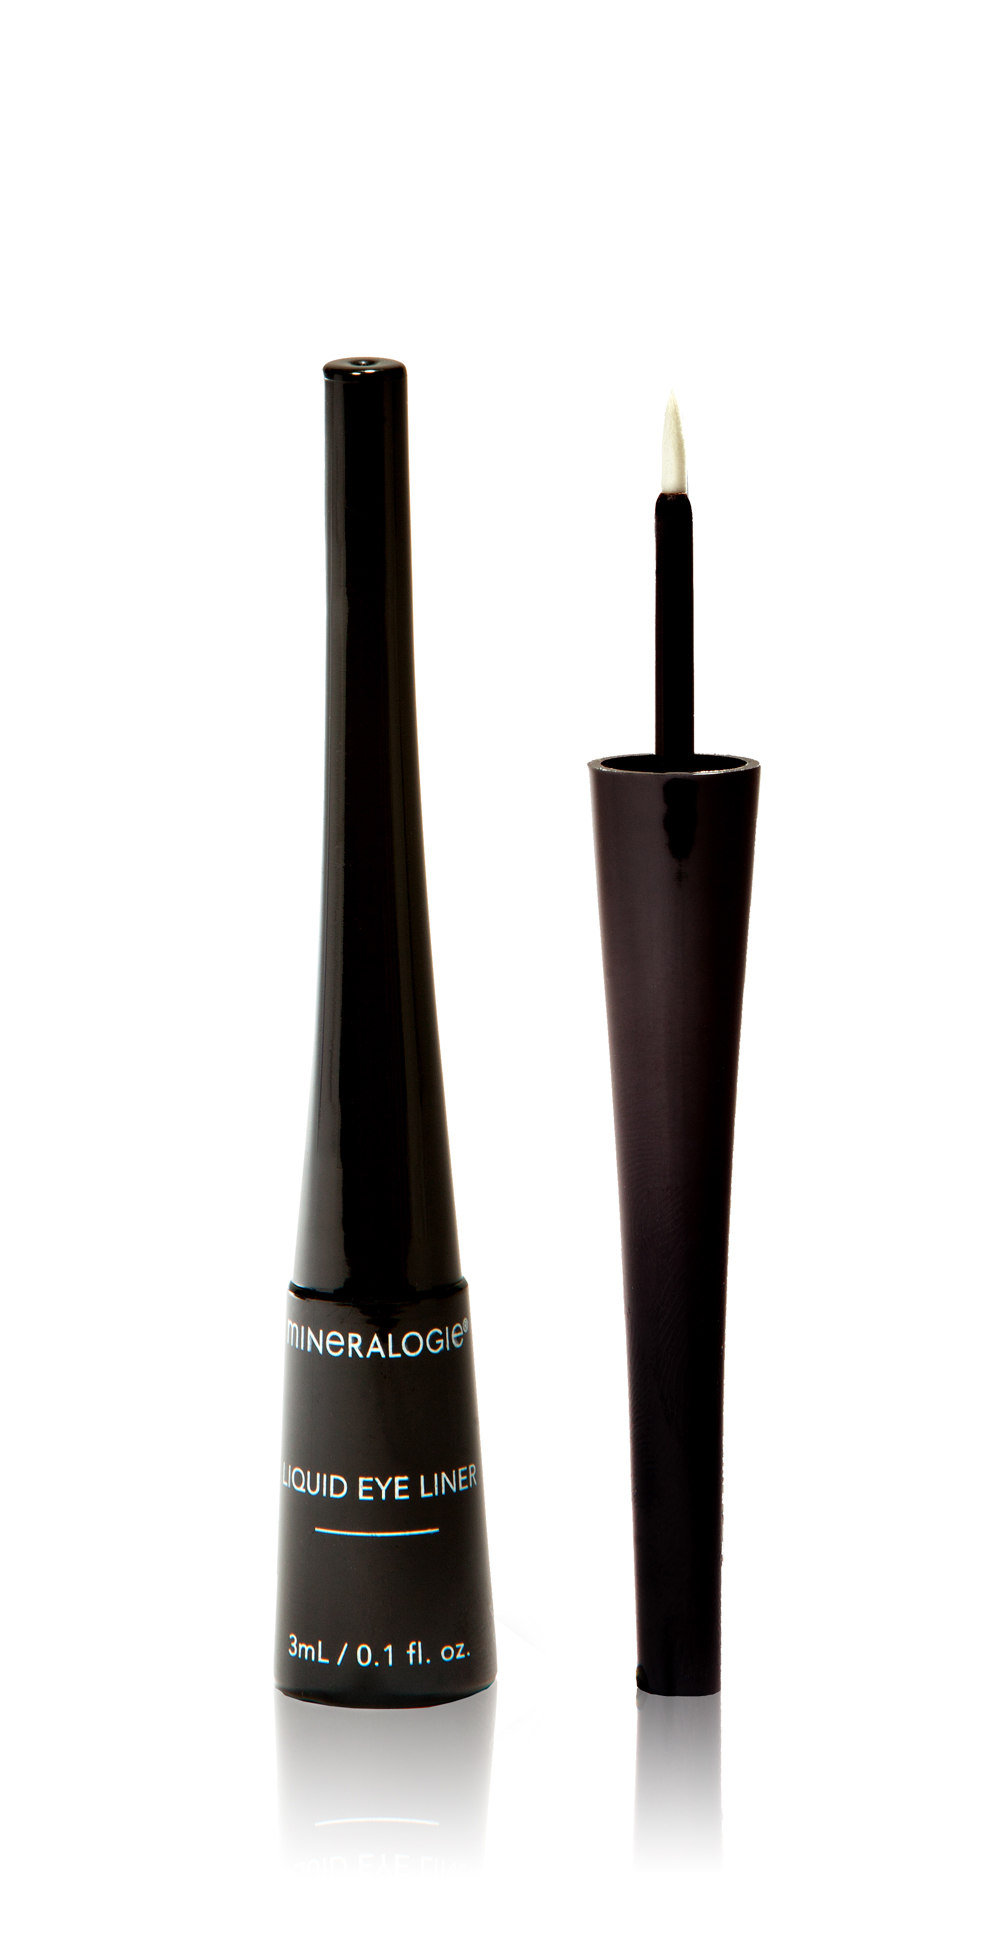 De Mineralogie Liquid Eyeliner